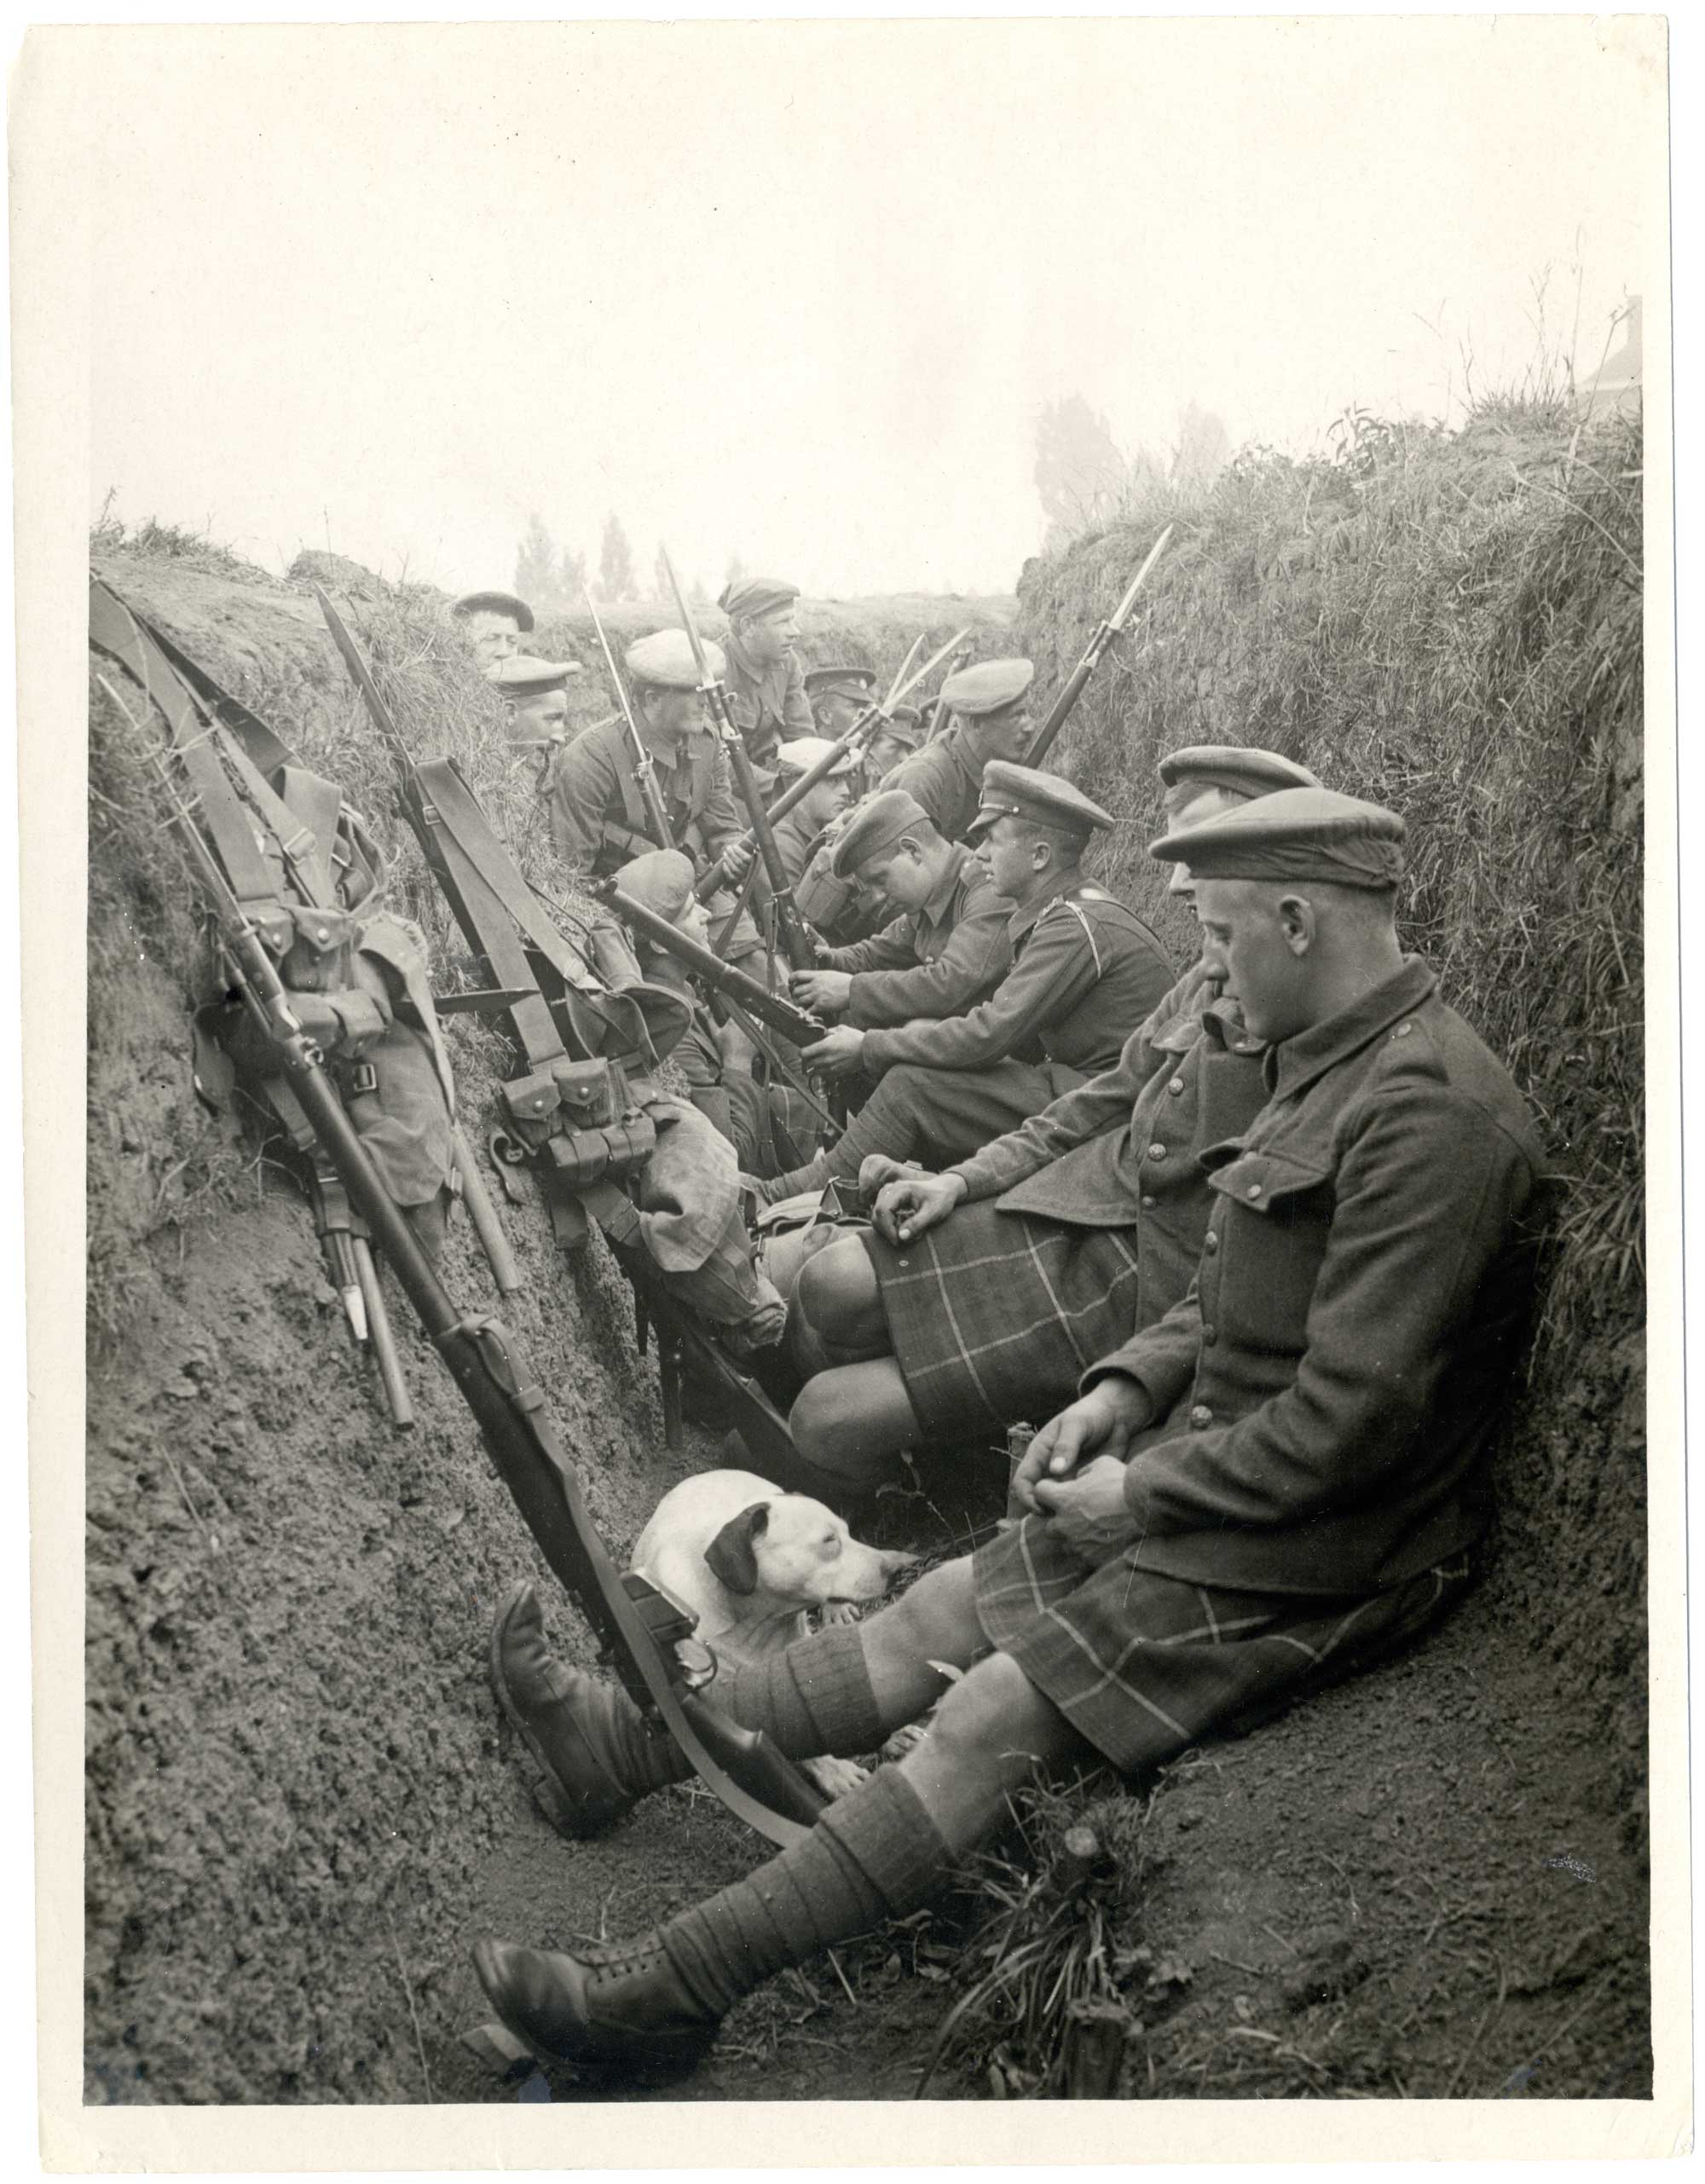 Photograph, 1915, showing a group of Highland Territorial soldiers in a trench, armed with bayonets. Also in the trench is a small dog: many battalions had dogs as mascots.